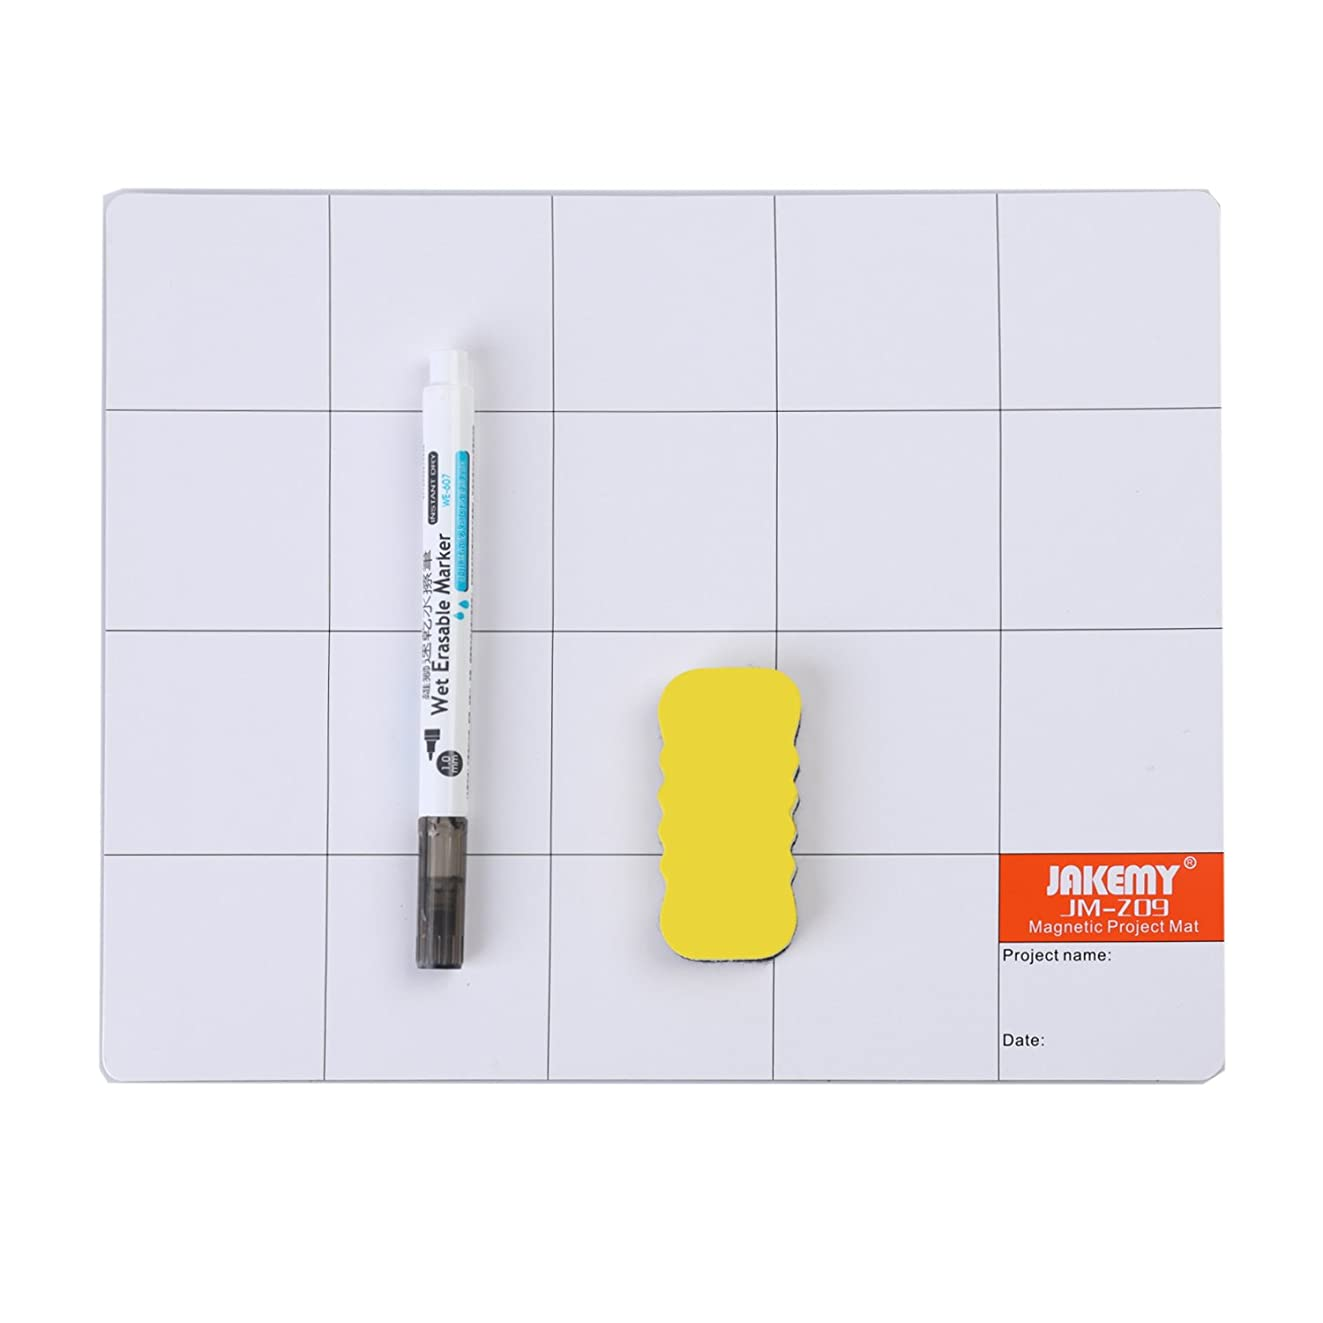 Magnetic Screw Mat Prevent Small Screws Losing, Magnetic Project Mat Rewritable Work Mat (9.8 x 7.9 inches)